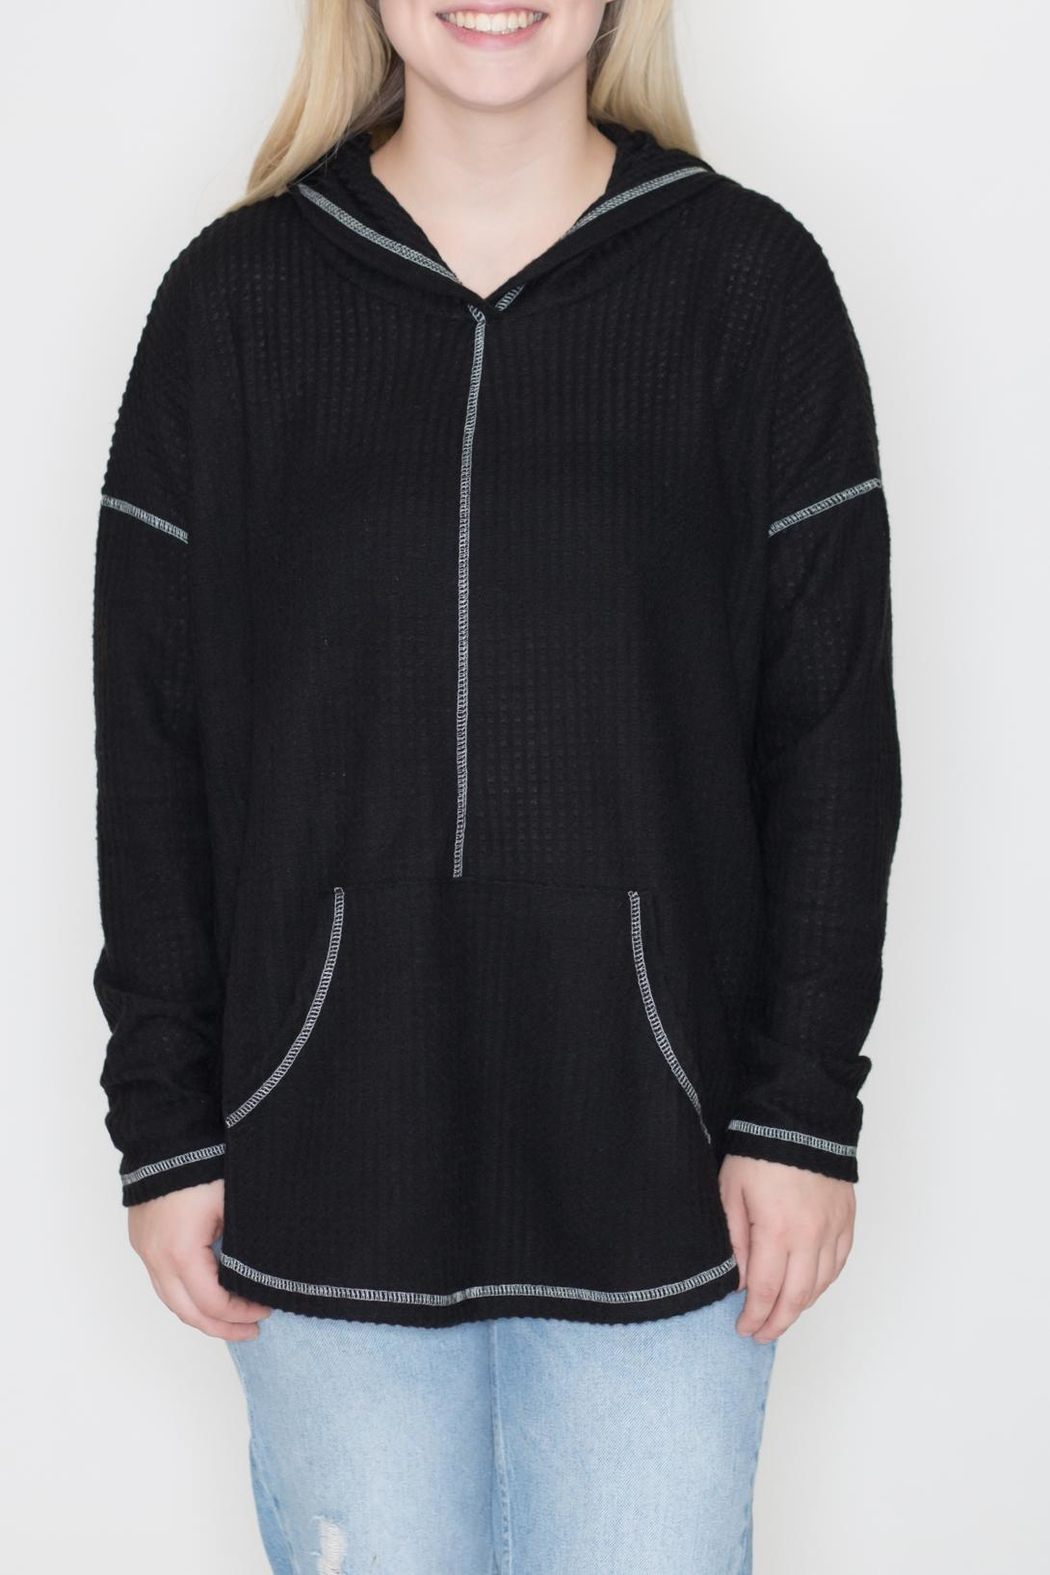 Cherish Black Thermal Hoodie - Main Image